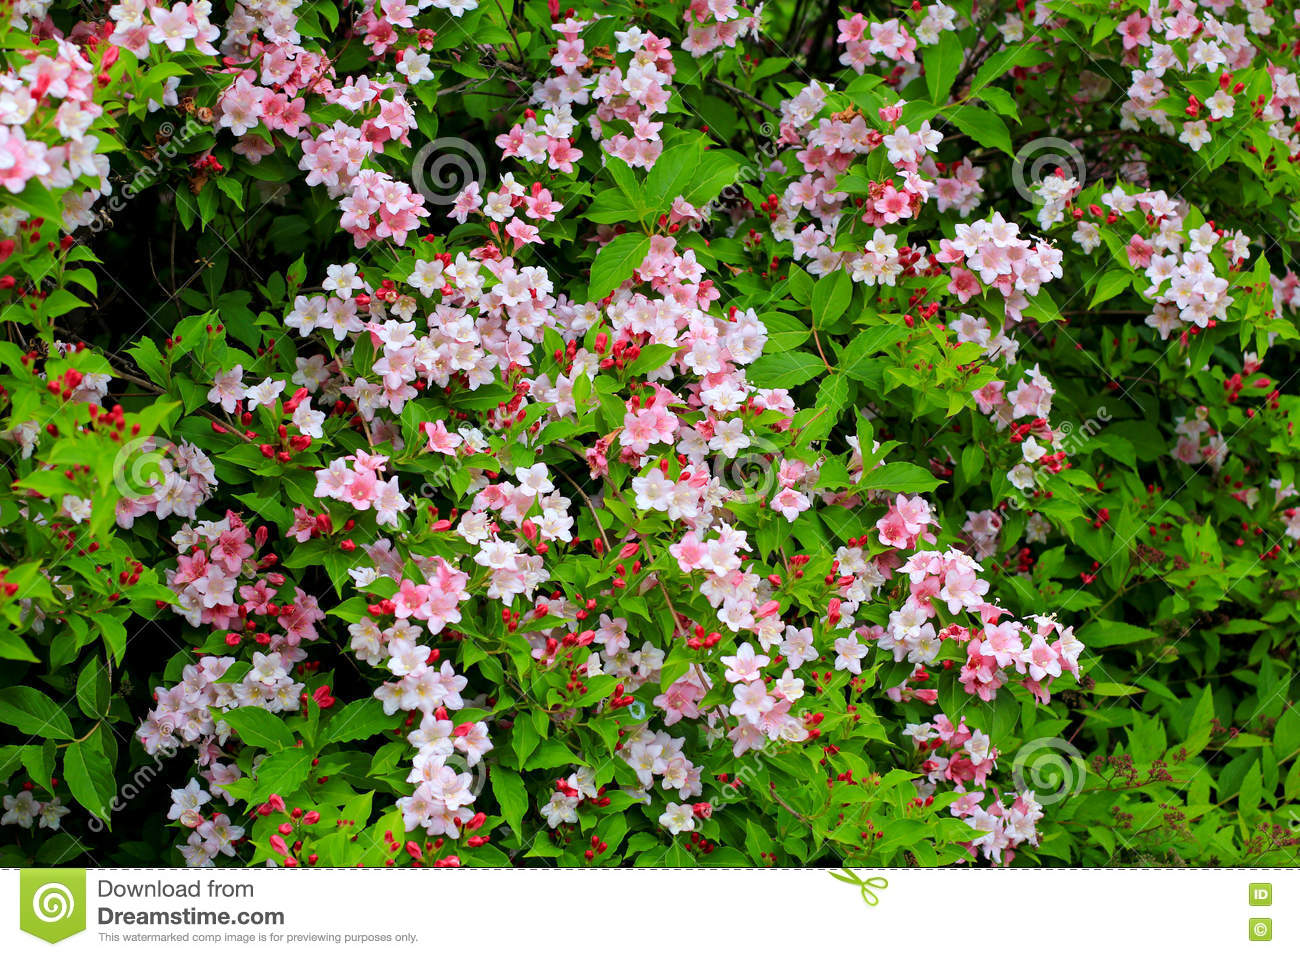 arbuste de floraison de weigela avec les fleurs roses image stock image du jardin ressort. Black Bedroom Furniture Sets. Home Design Ideas